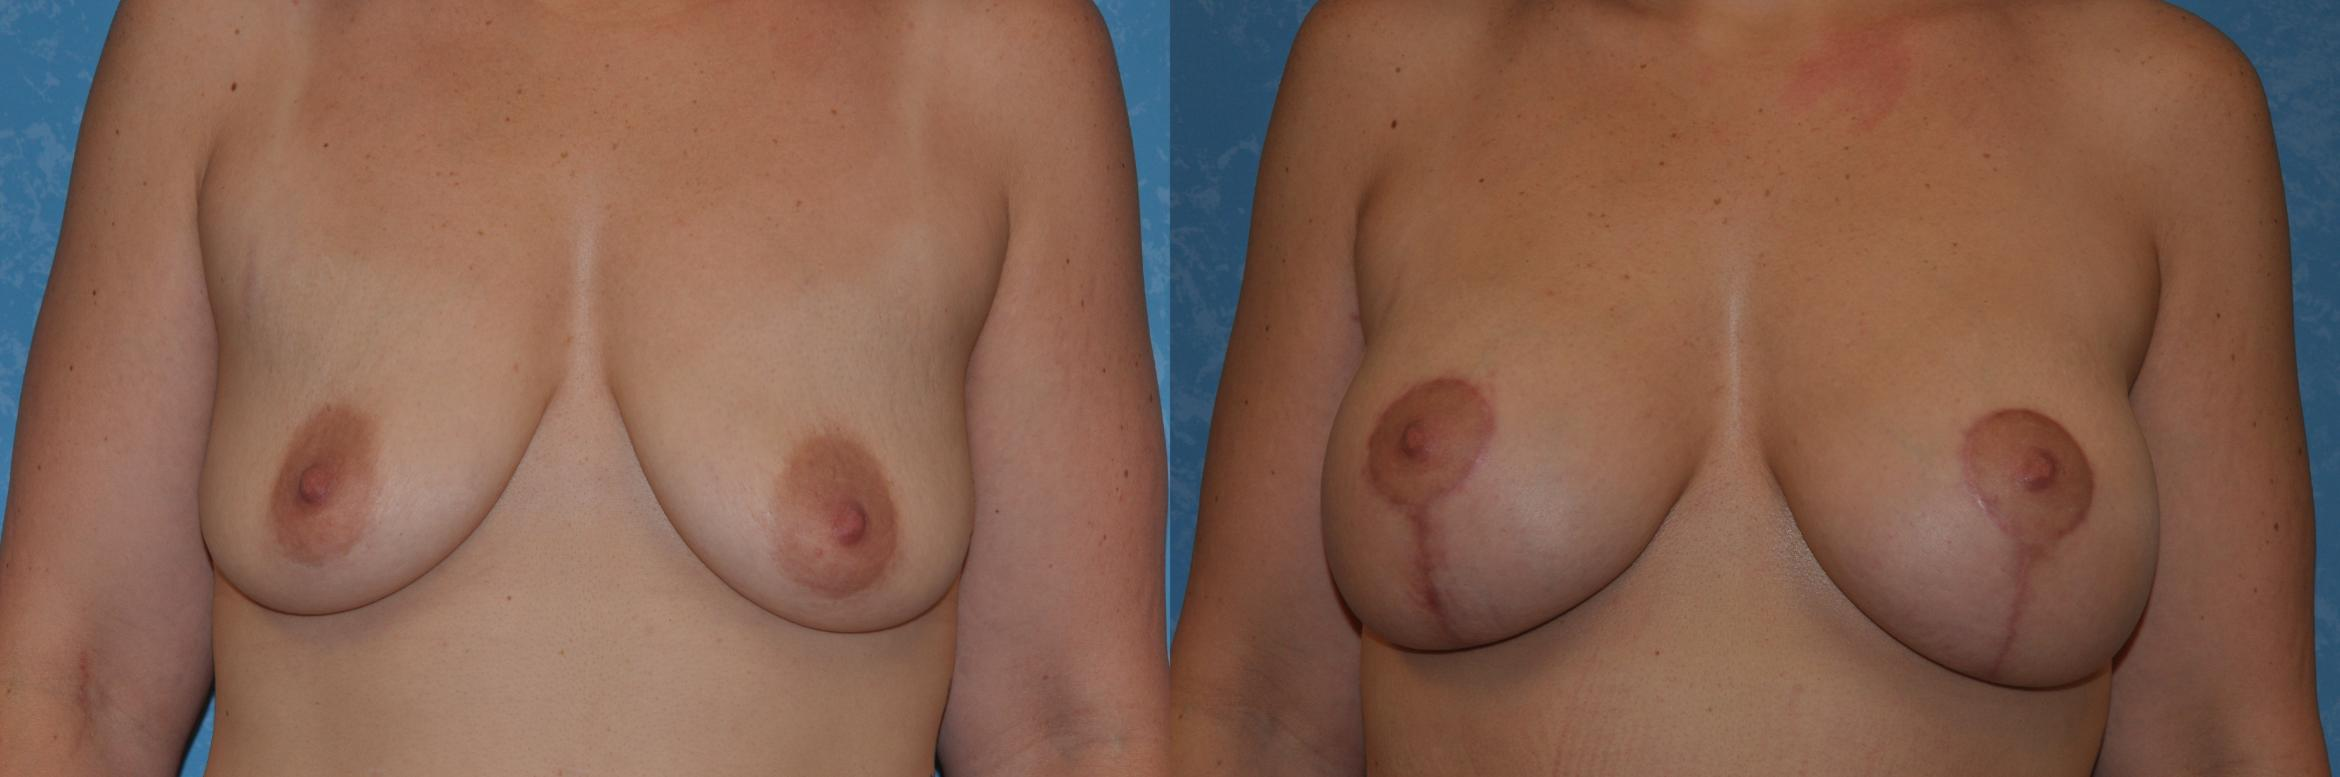 Breast Lift With Implants Before & After Photo | Toledo, Ohio | Dr. Craig Colville